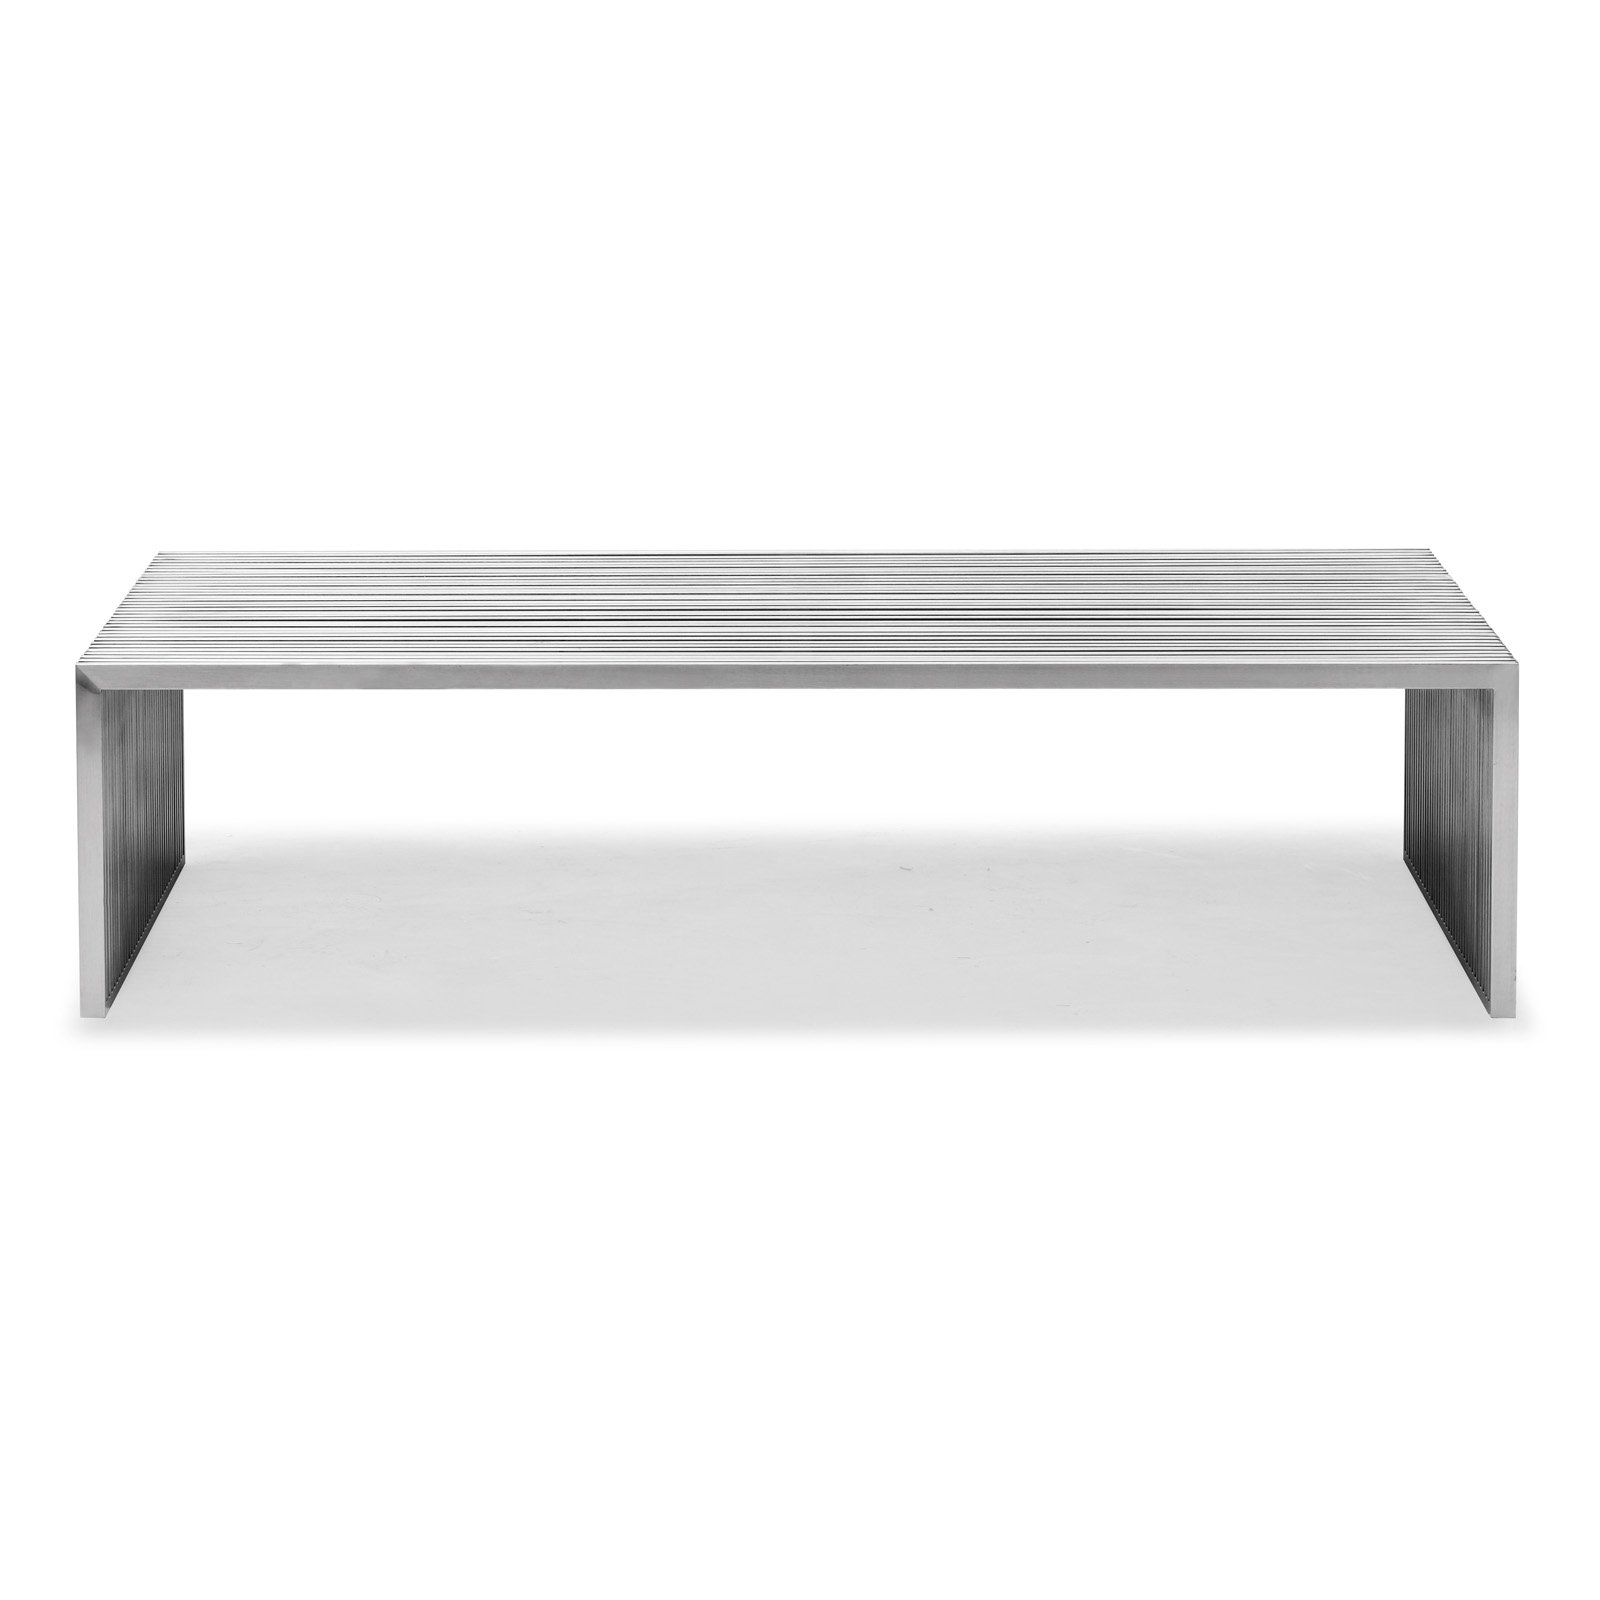 Magnificent Zuo Modern Novel Long Coffee Table Ibusinesslaw Wood Chair Design Ideas Ibusinesslaworg